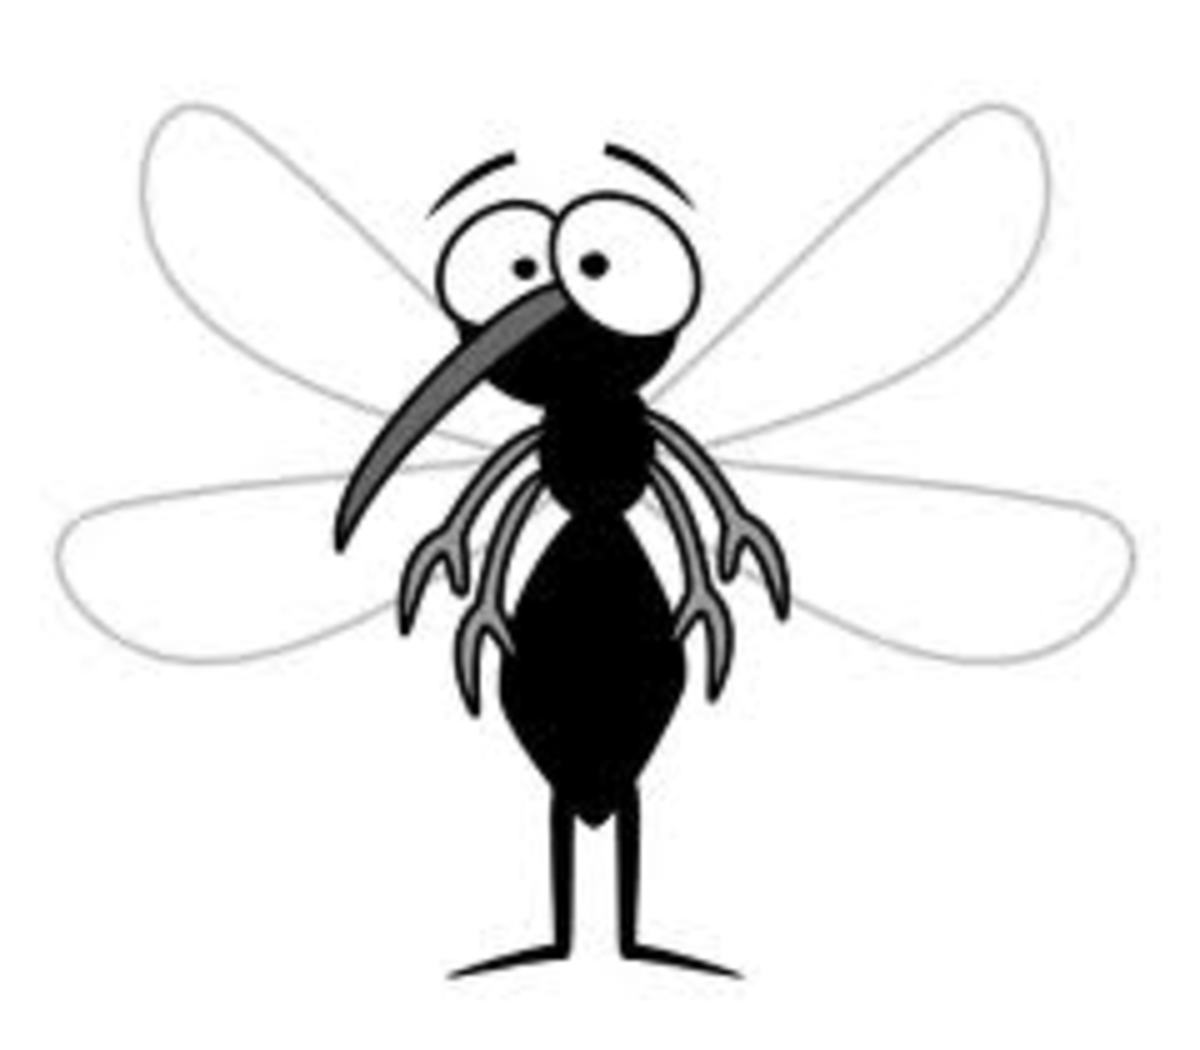 Essential Oils That Repell Mosquitoes